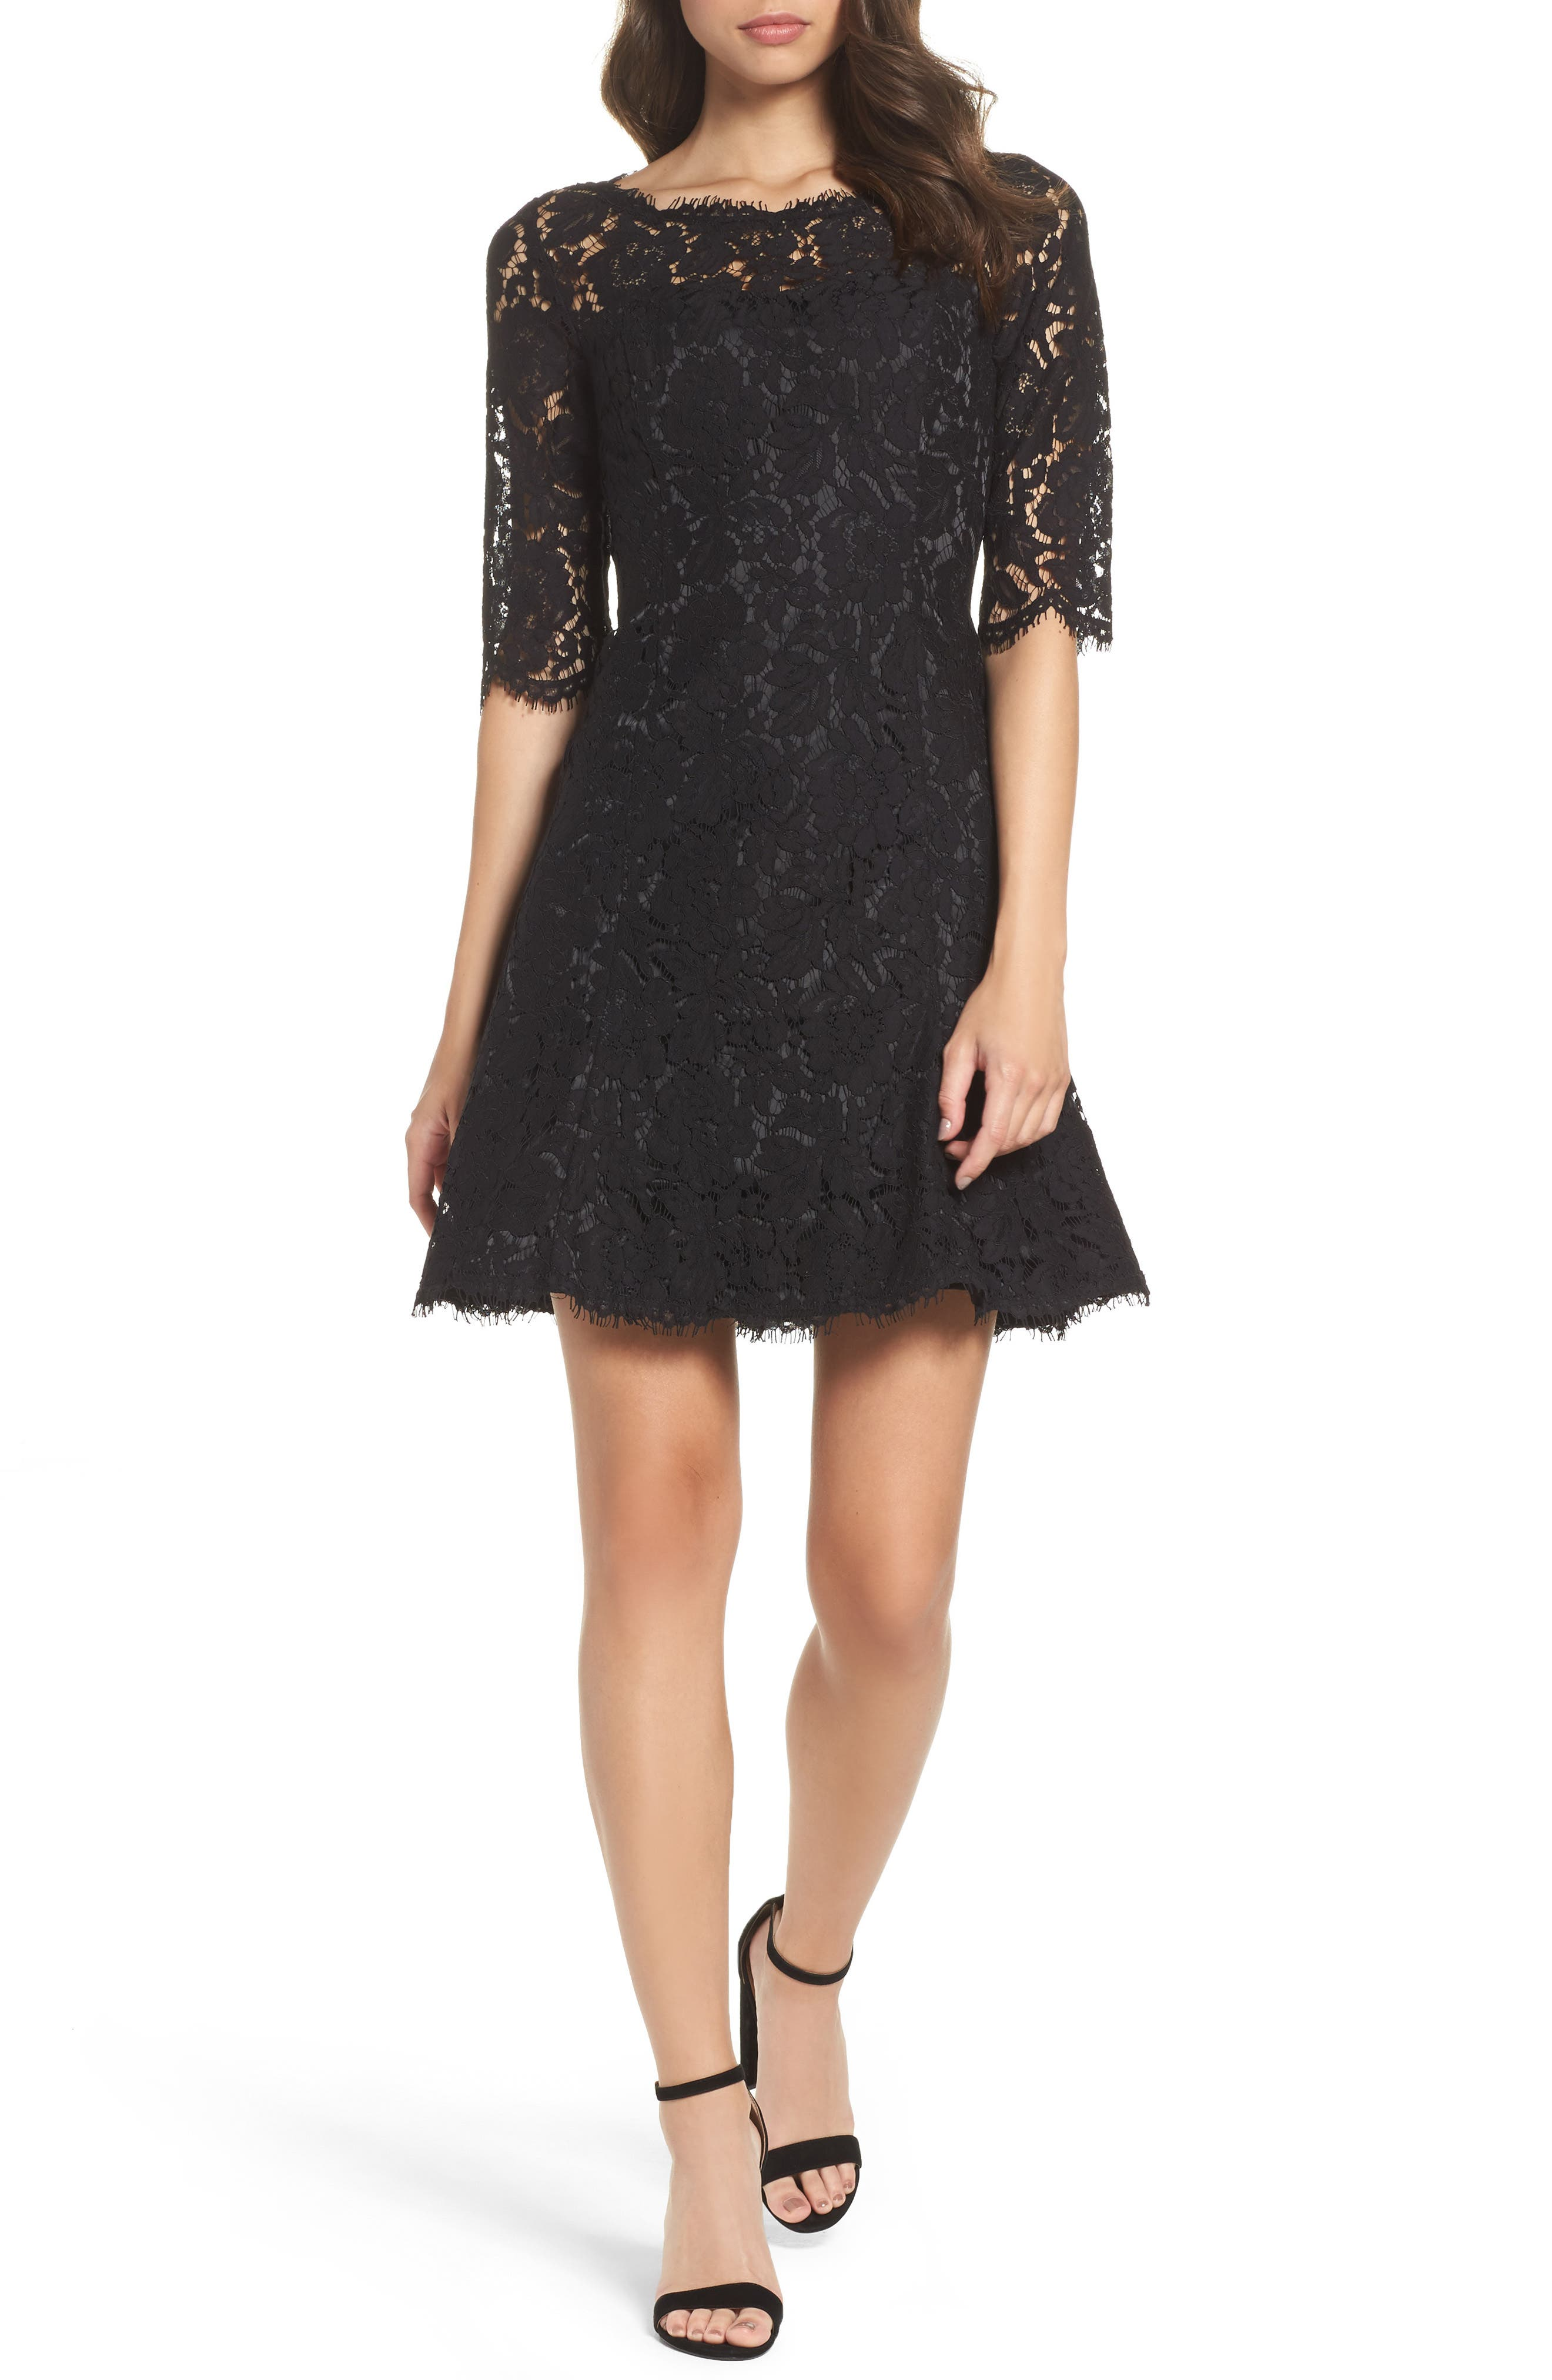 Fit and Flare Cocktail Dress